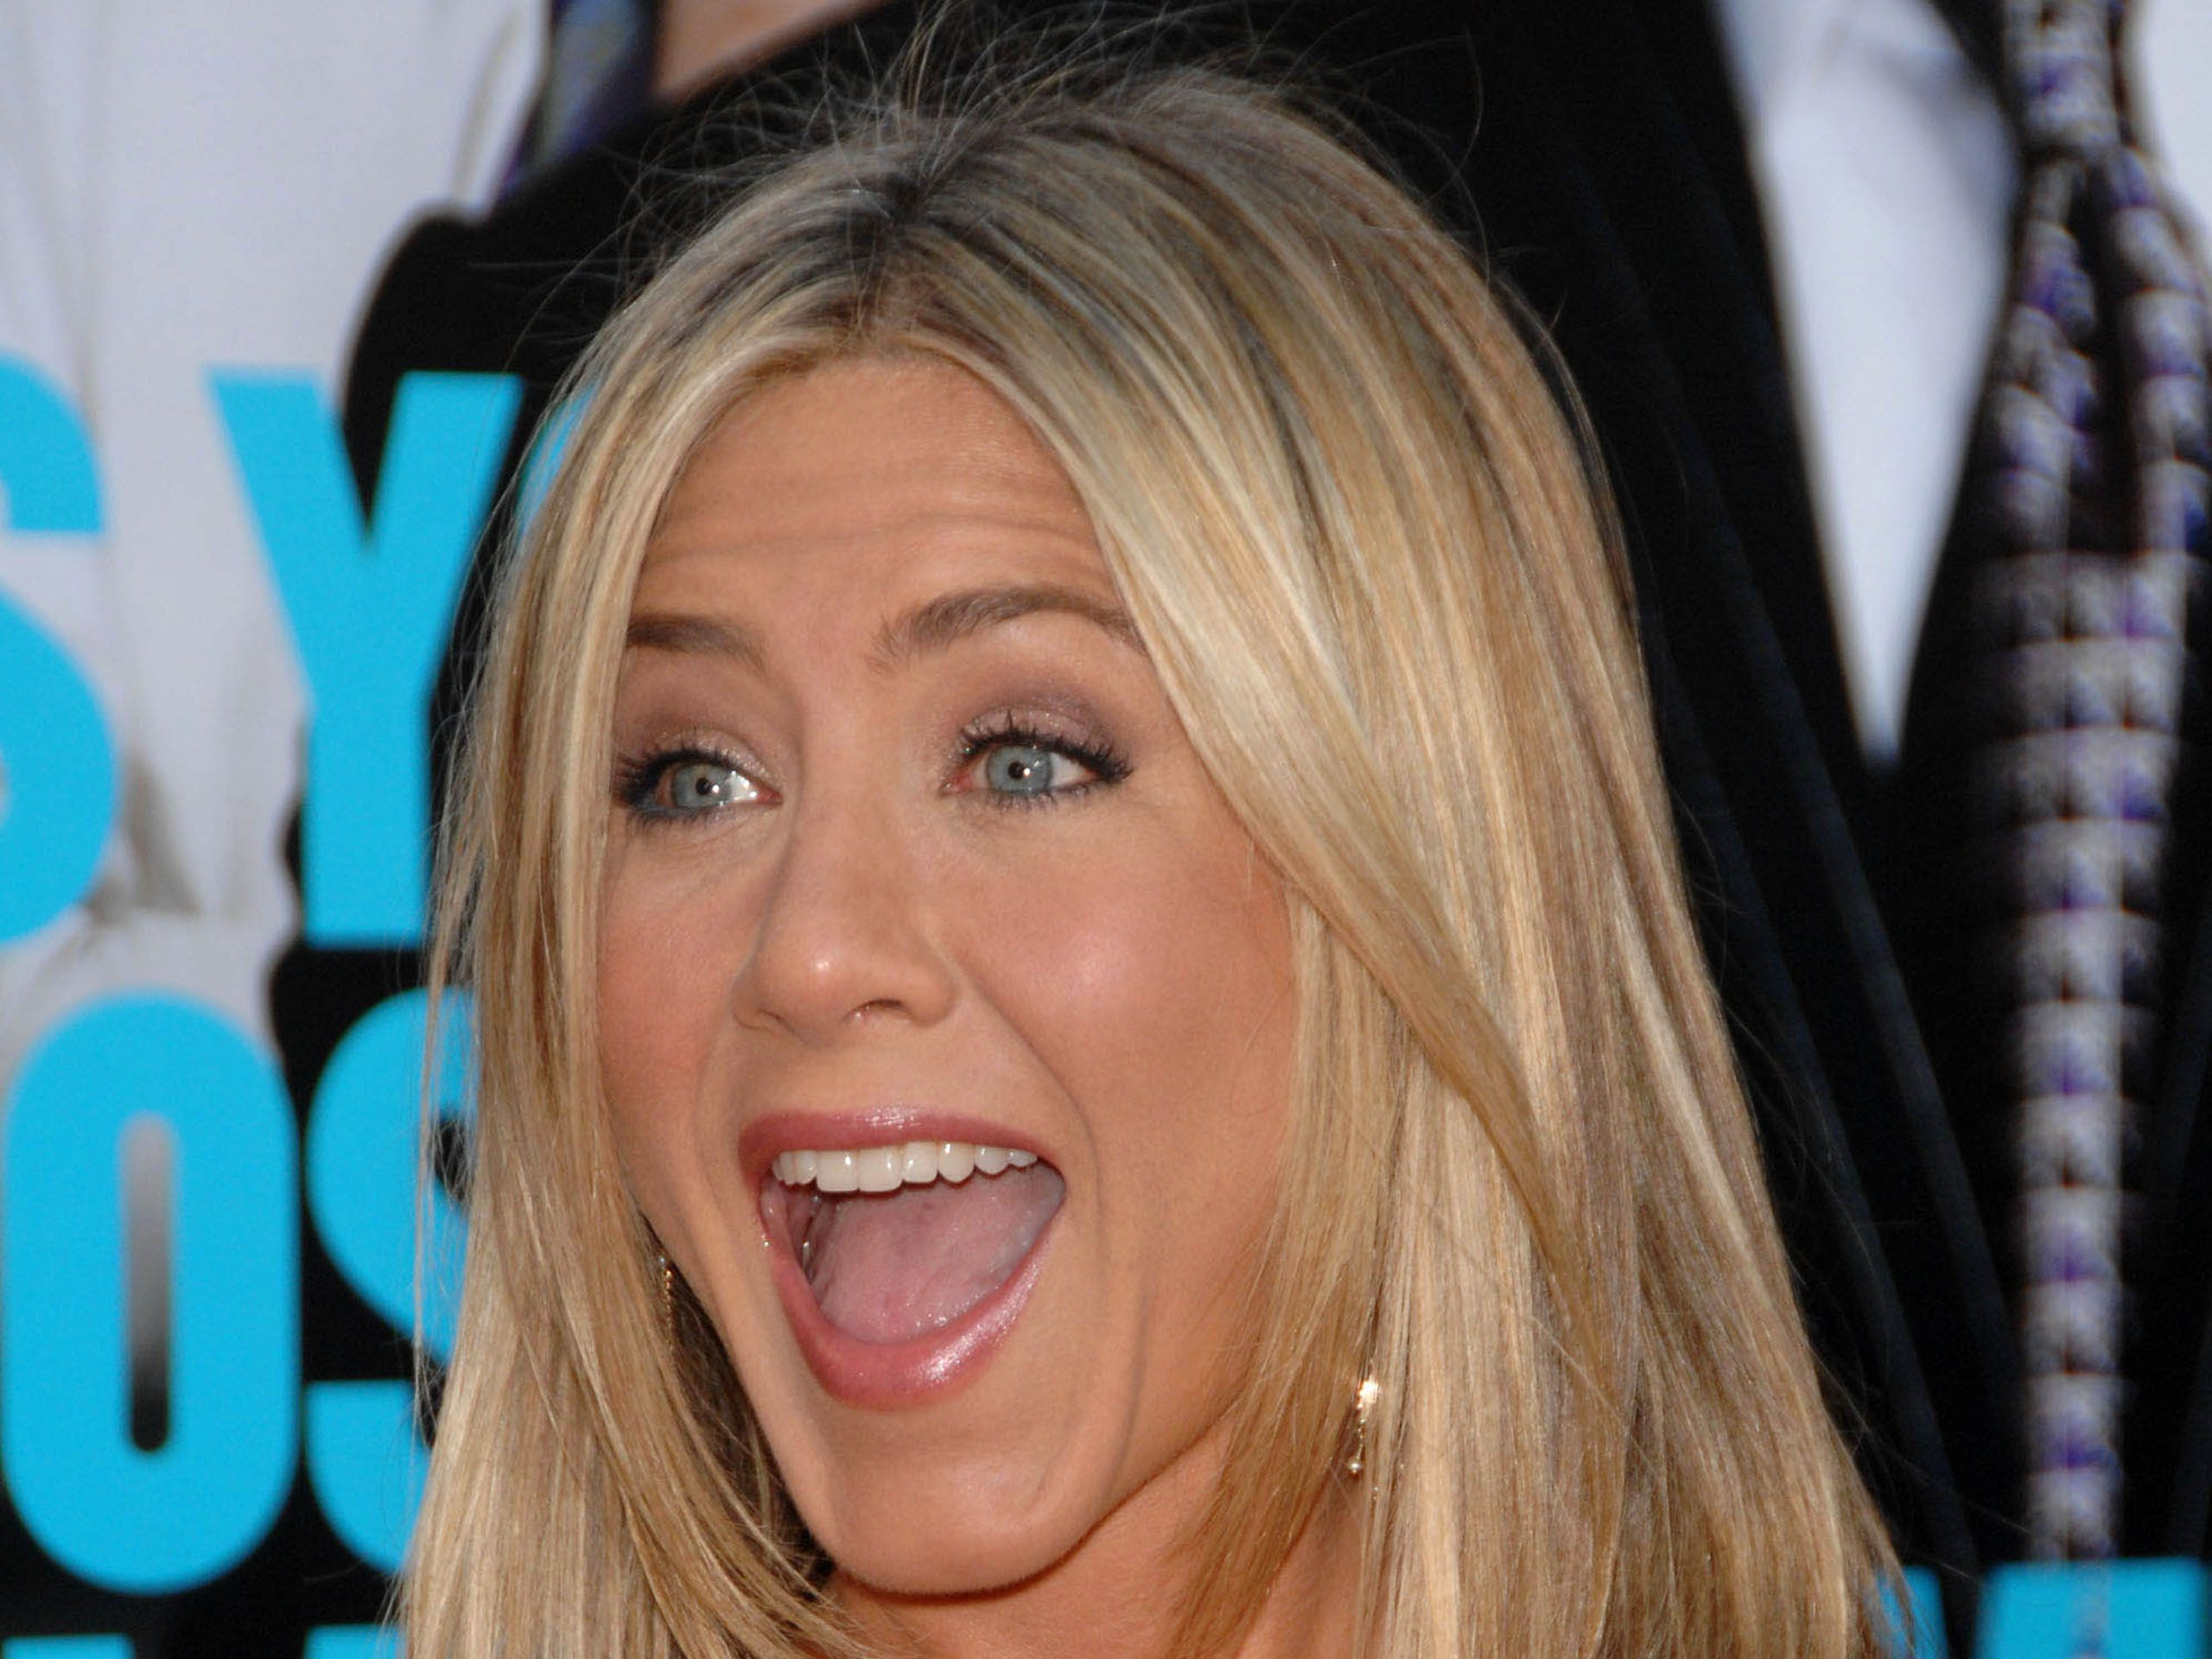 Jennifer Aniston At Horrible Bosses Premiere In Hollywood | Free ...